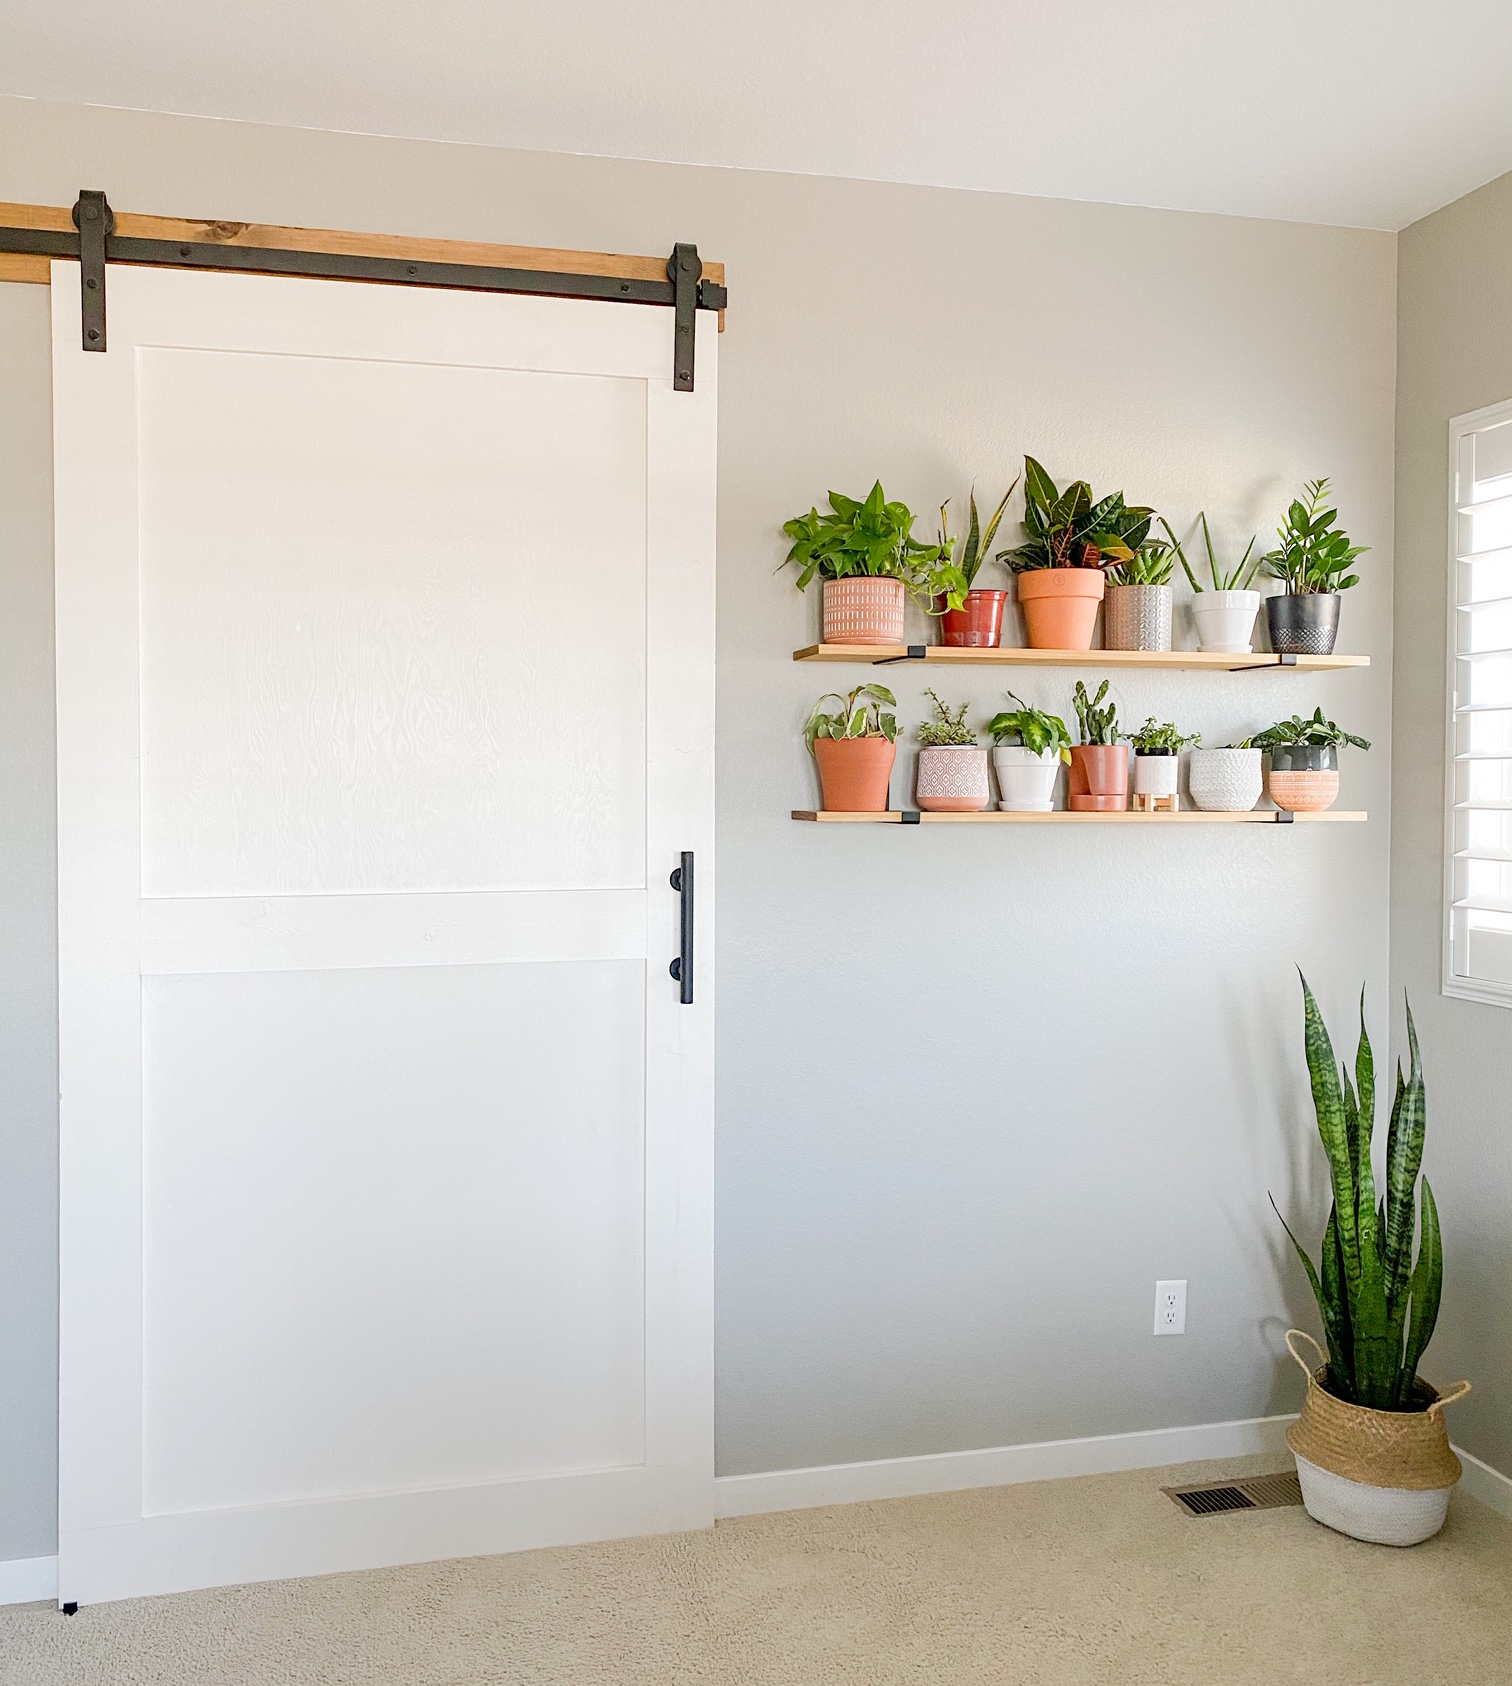 Barn door with a plant shelves wall